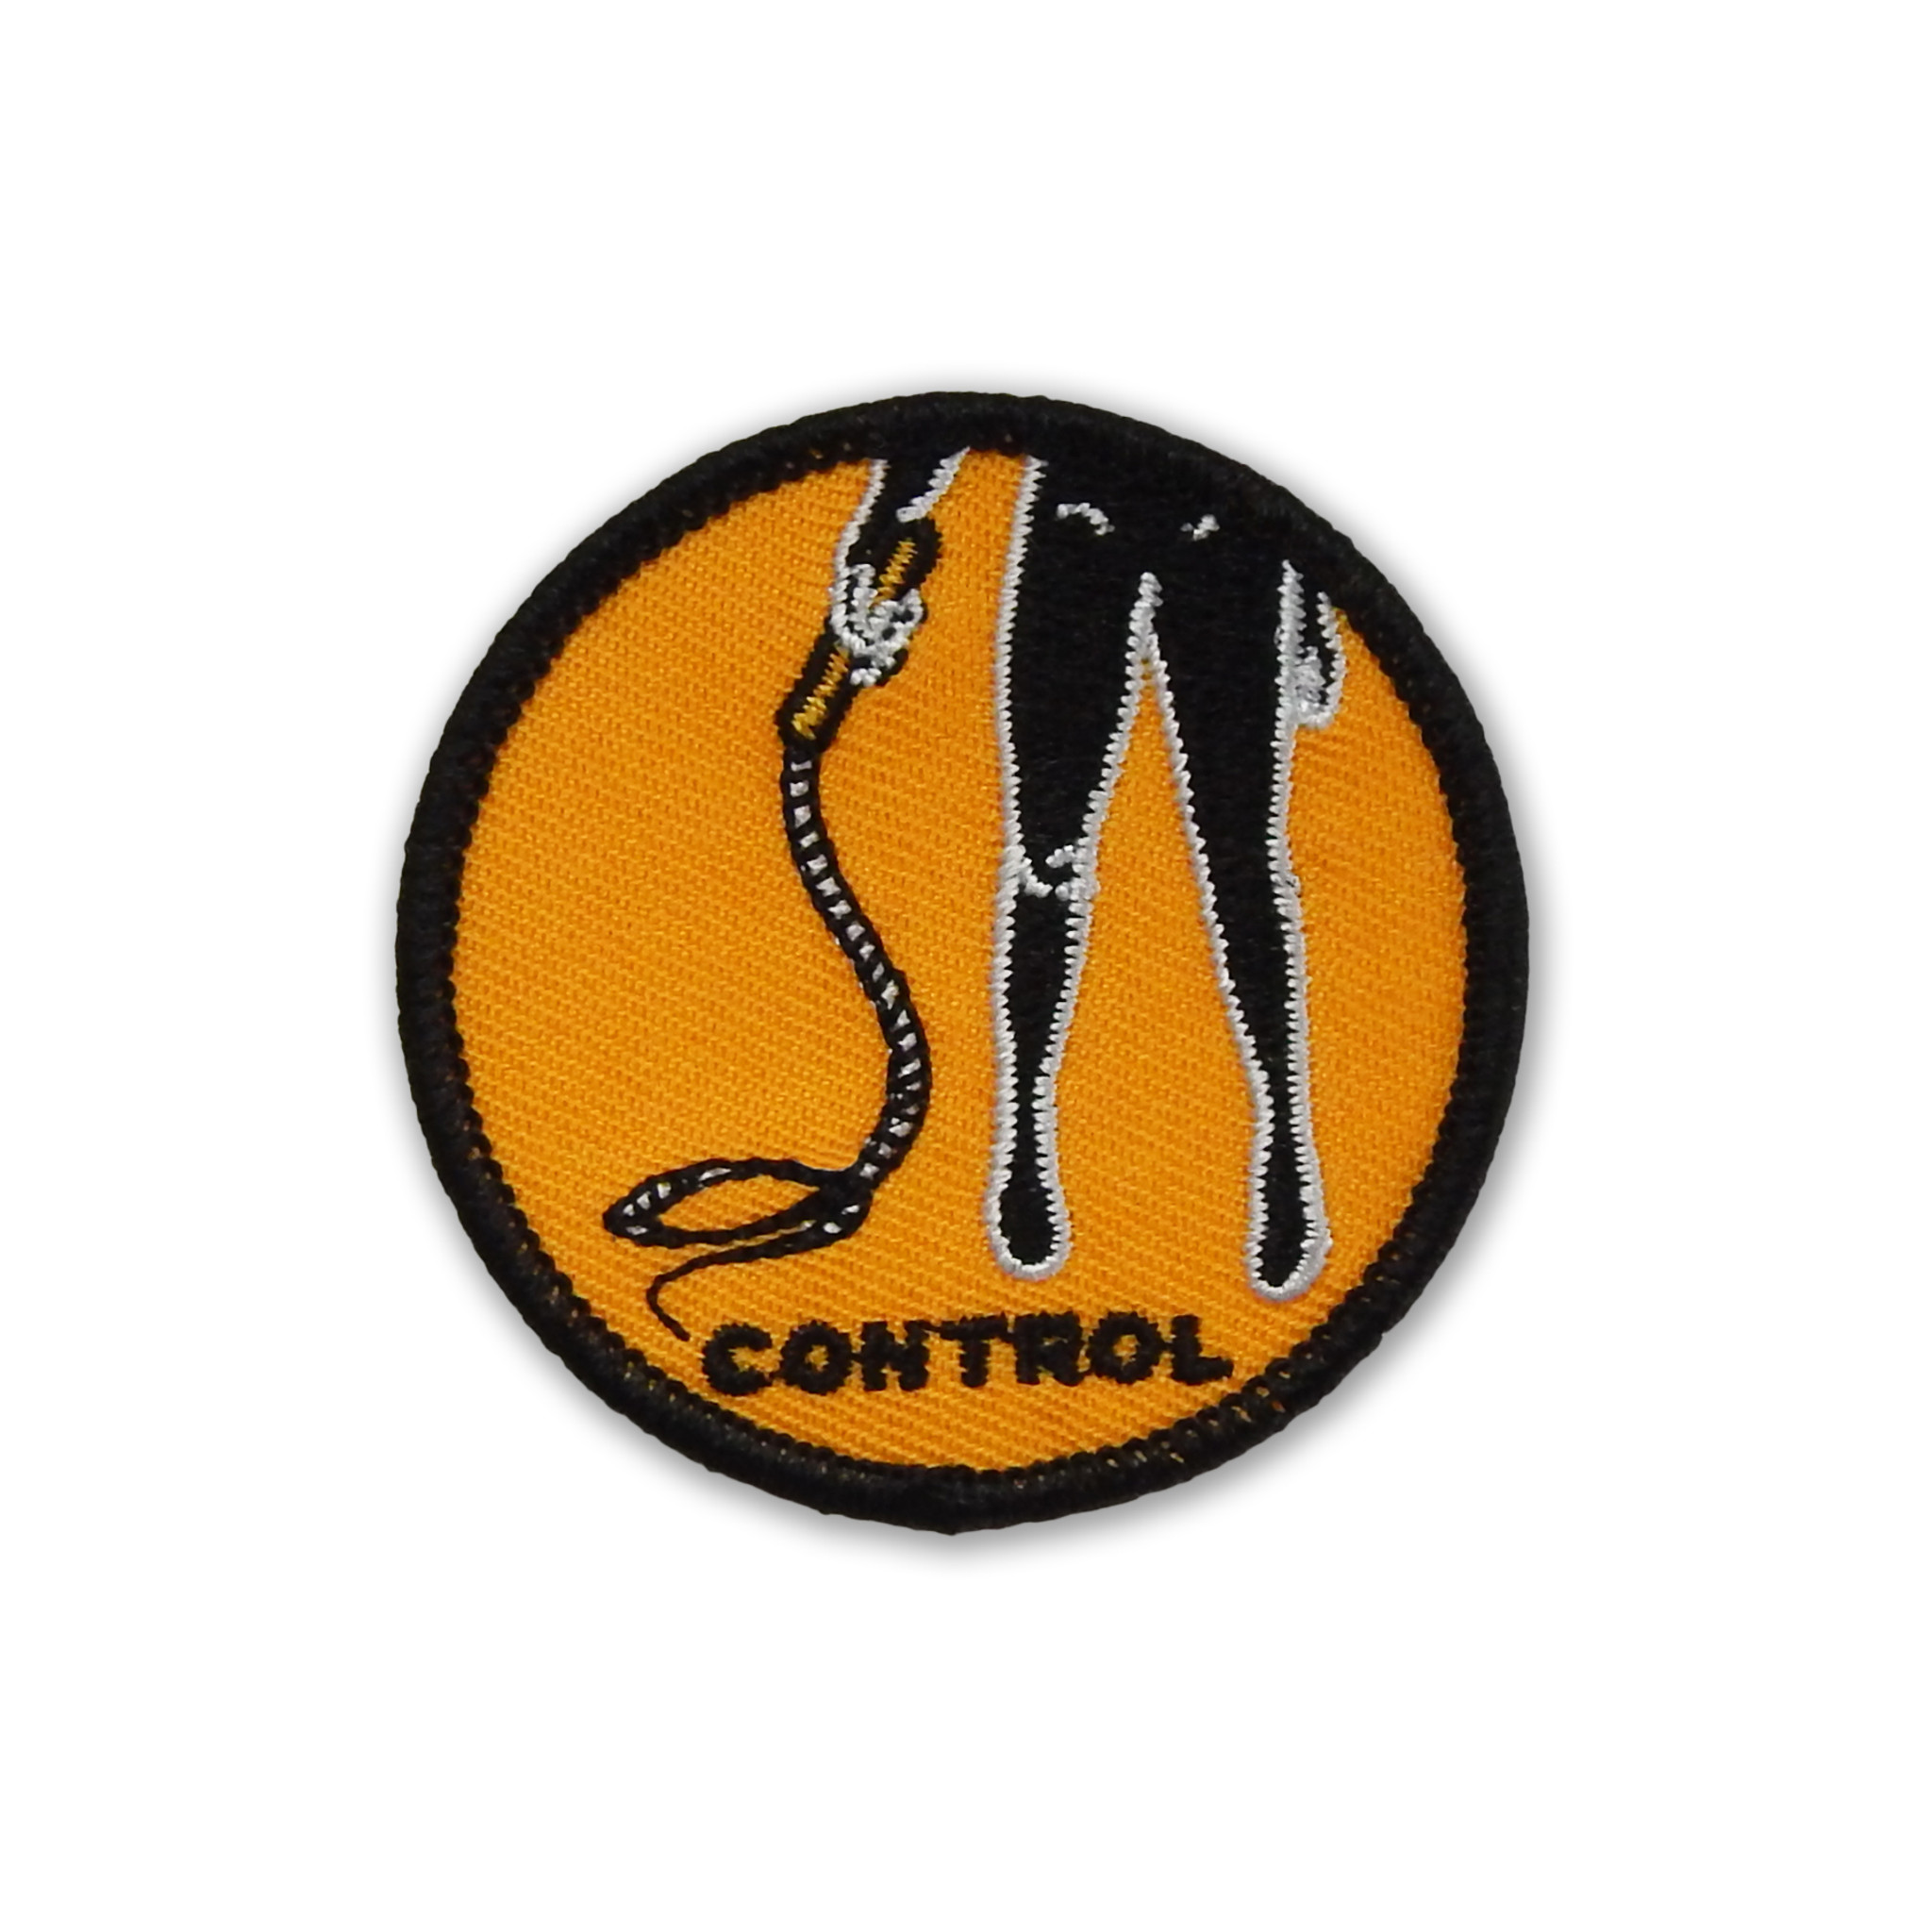 Control Patch